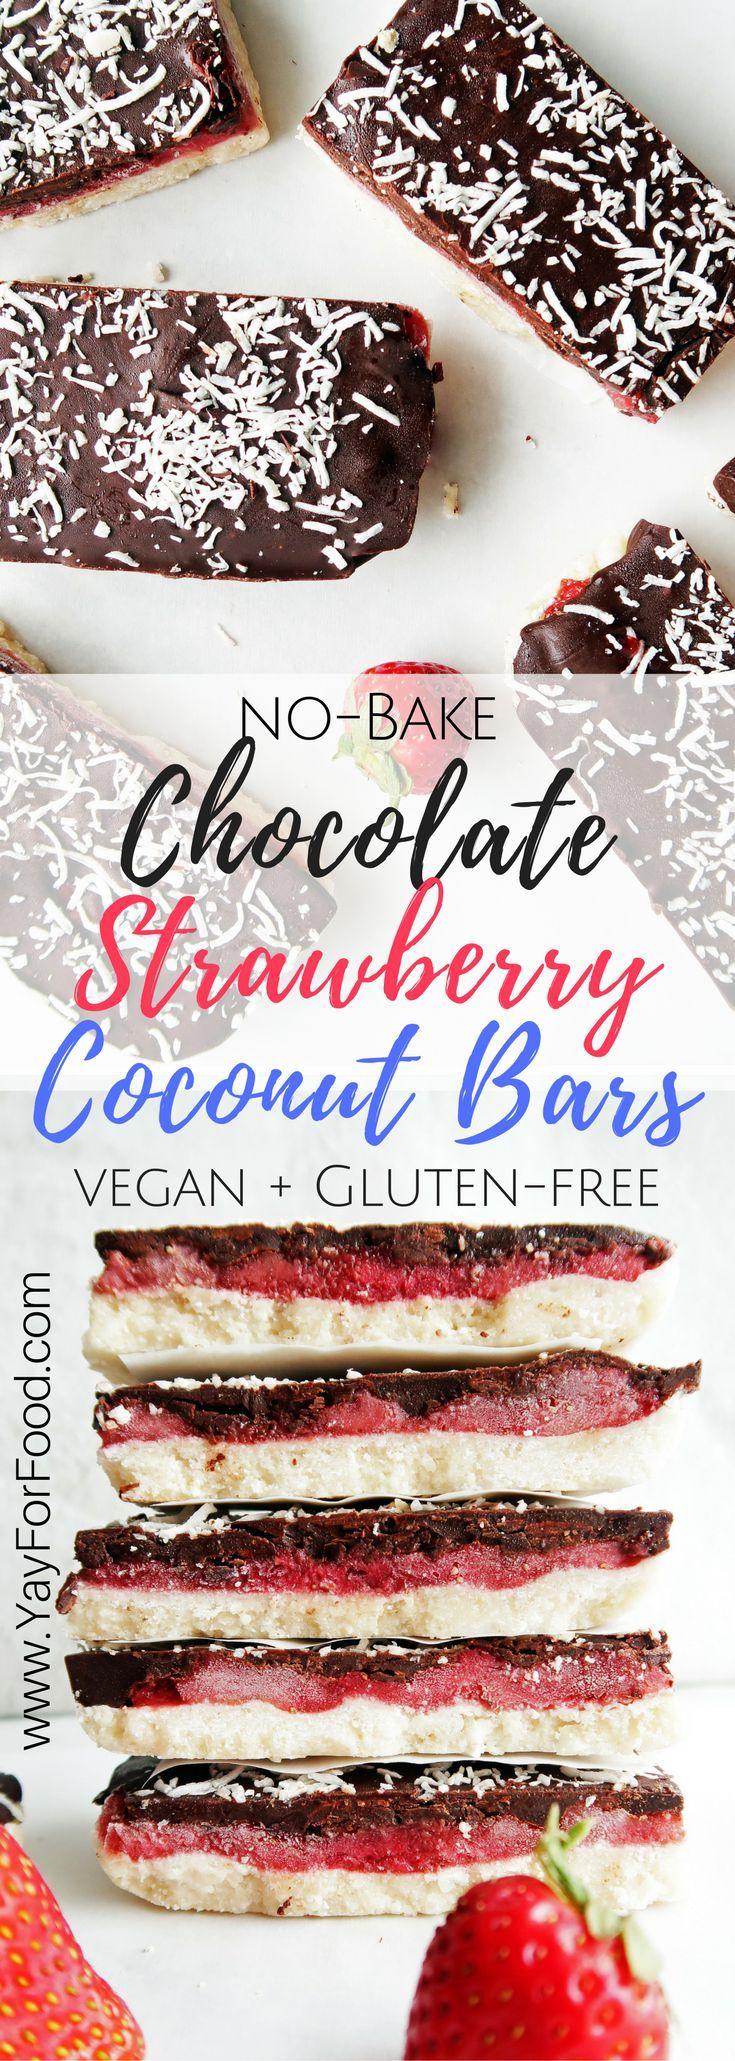 This delicious triple-layered chocolate strawberry coconut bar is no-bake, only uses 6 ingredients, and is ready in 30 minutes! Vegan | Gluten-Free | Vegetarian | Paleo | Dessert